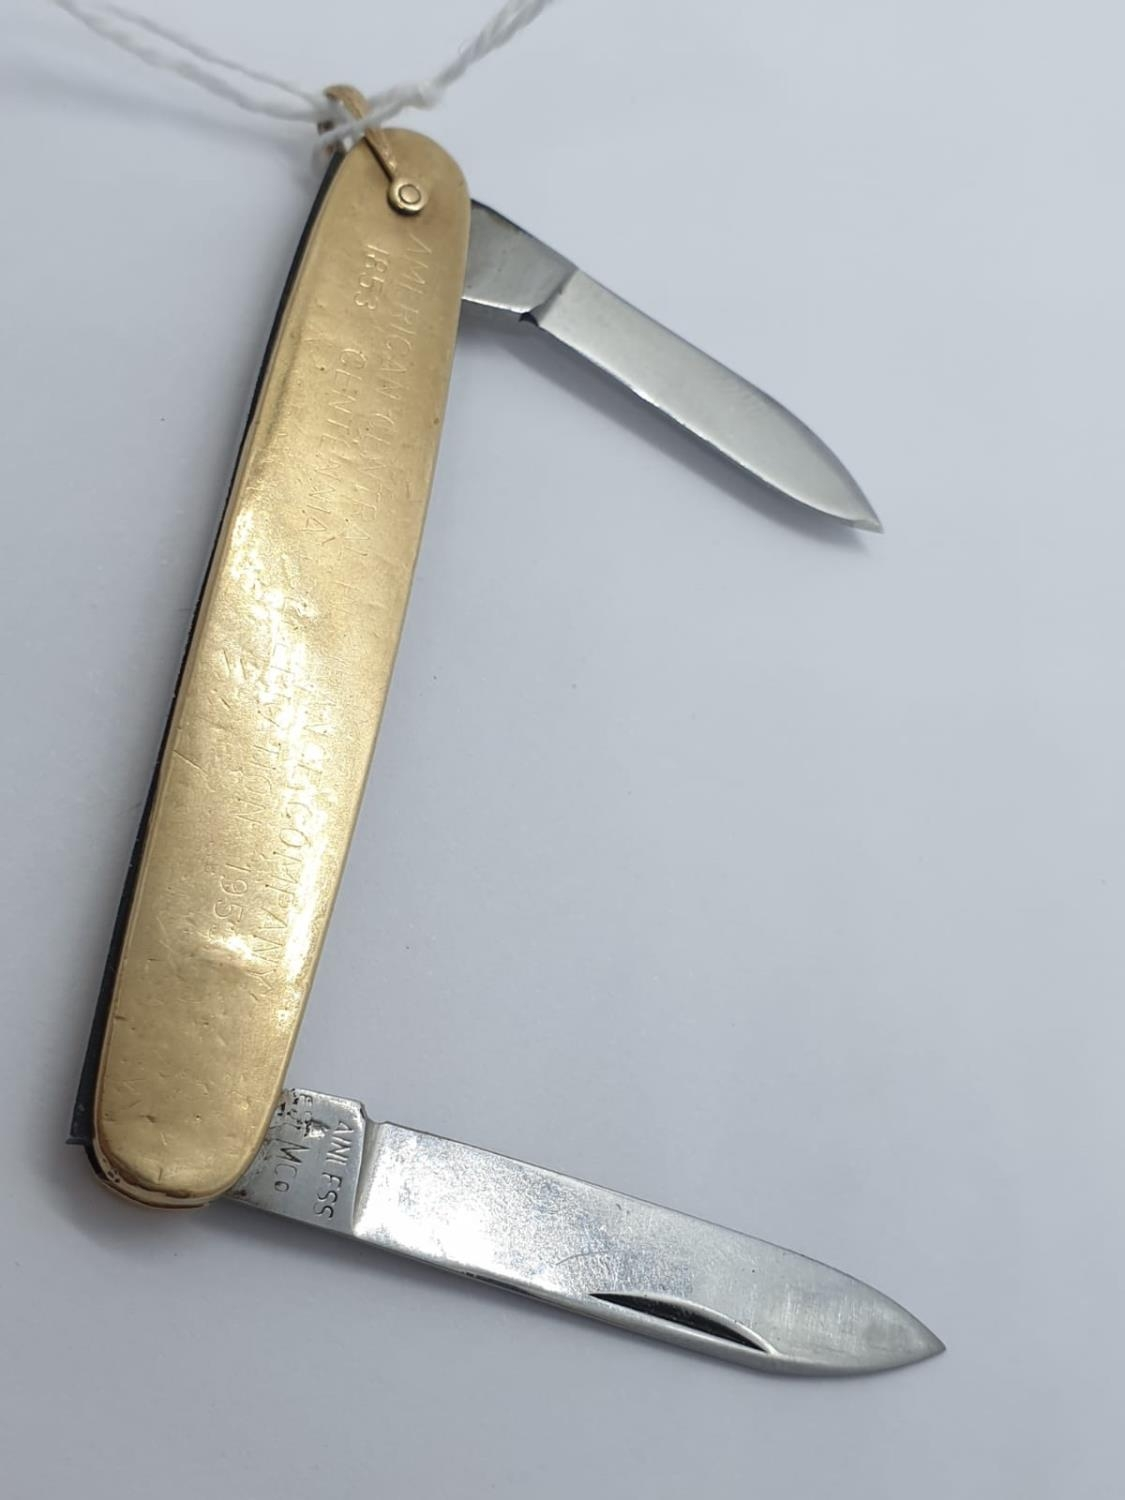 10ct gold pen knife, weight 21.4g - Image 2 of 3